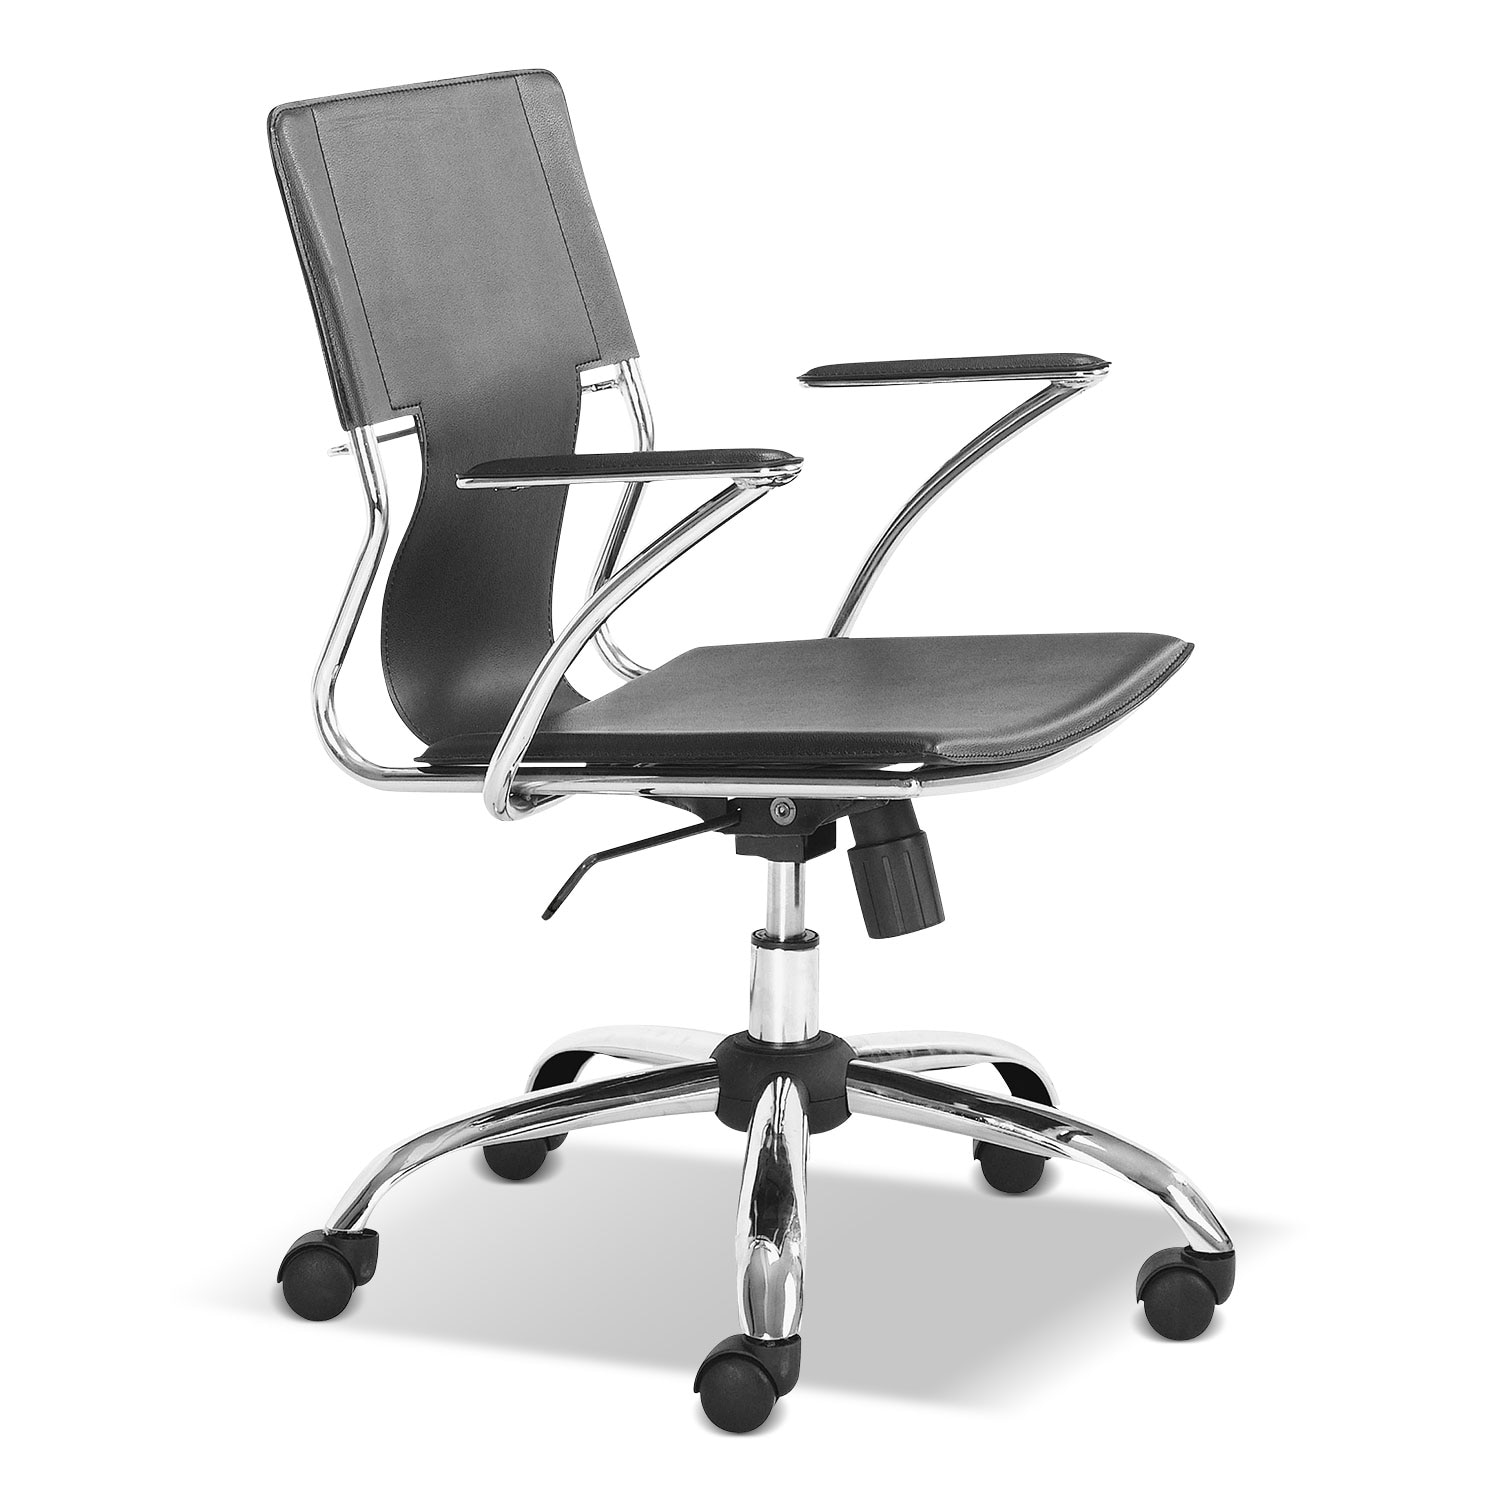 Crowley Office Arm Chair - Black